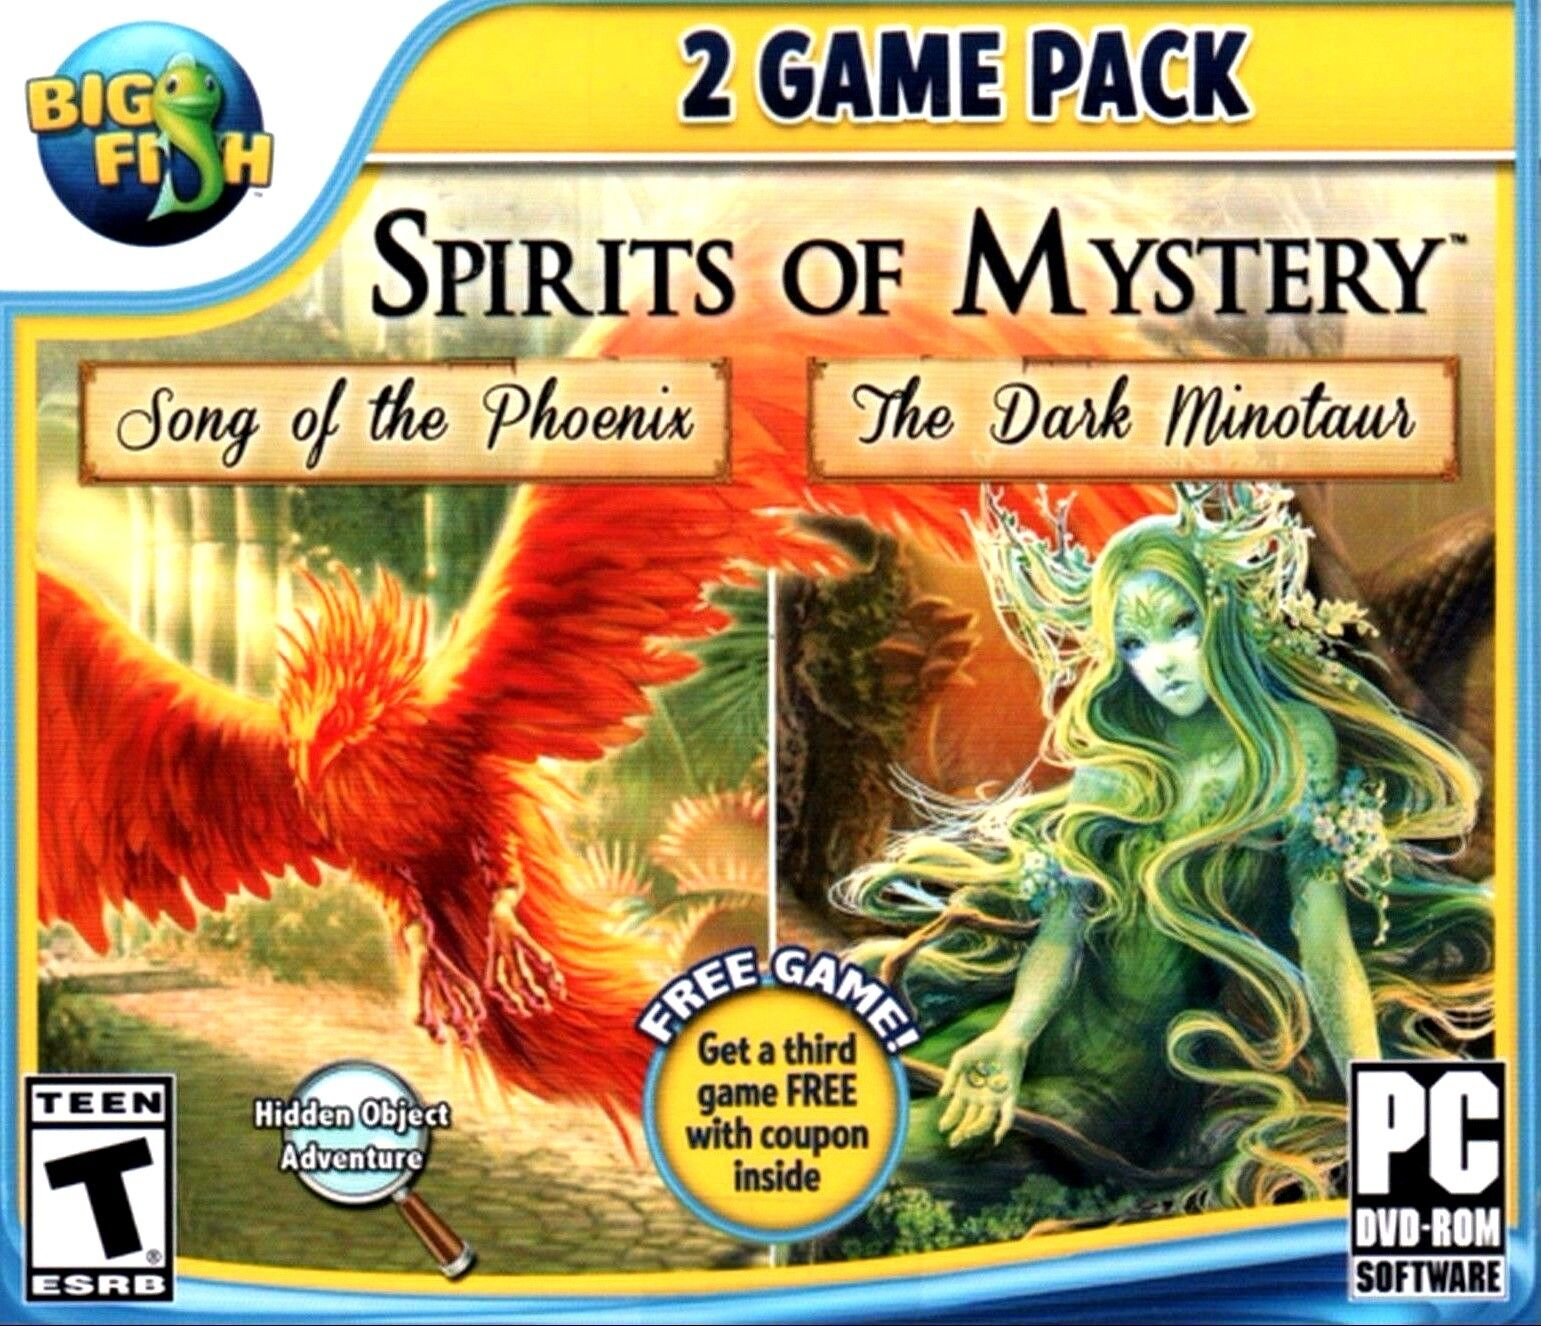 Computer Games - Spirits Of Mystery 2 Game Pack PC Games Windows 10 8 7 XP Computer hidden object